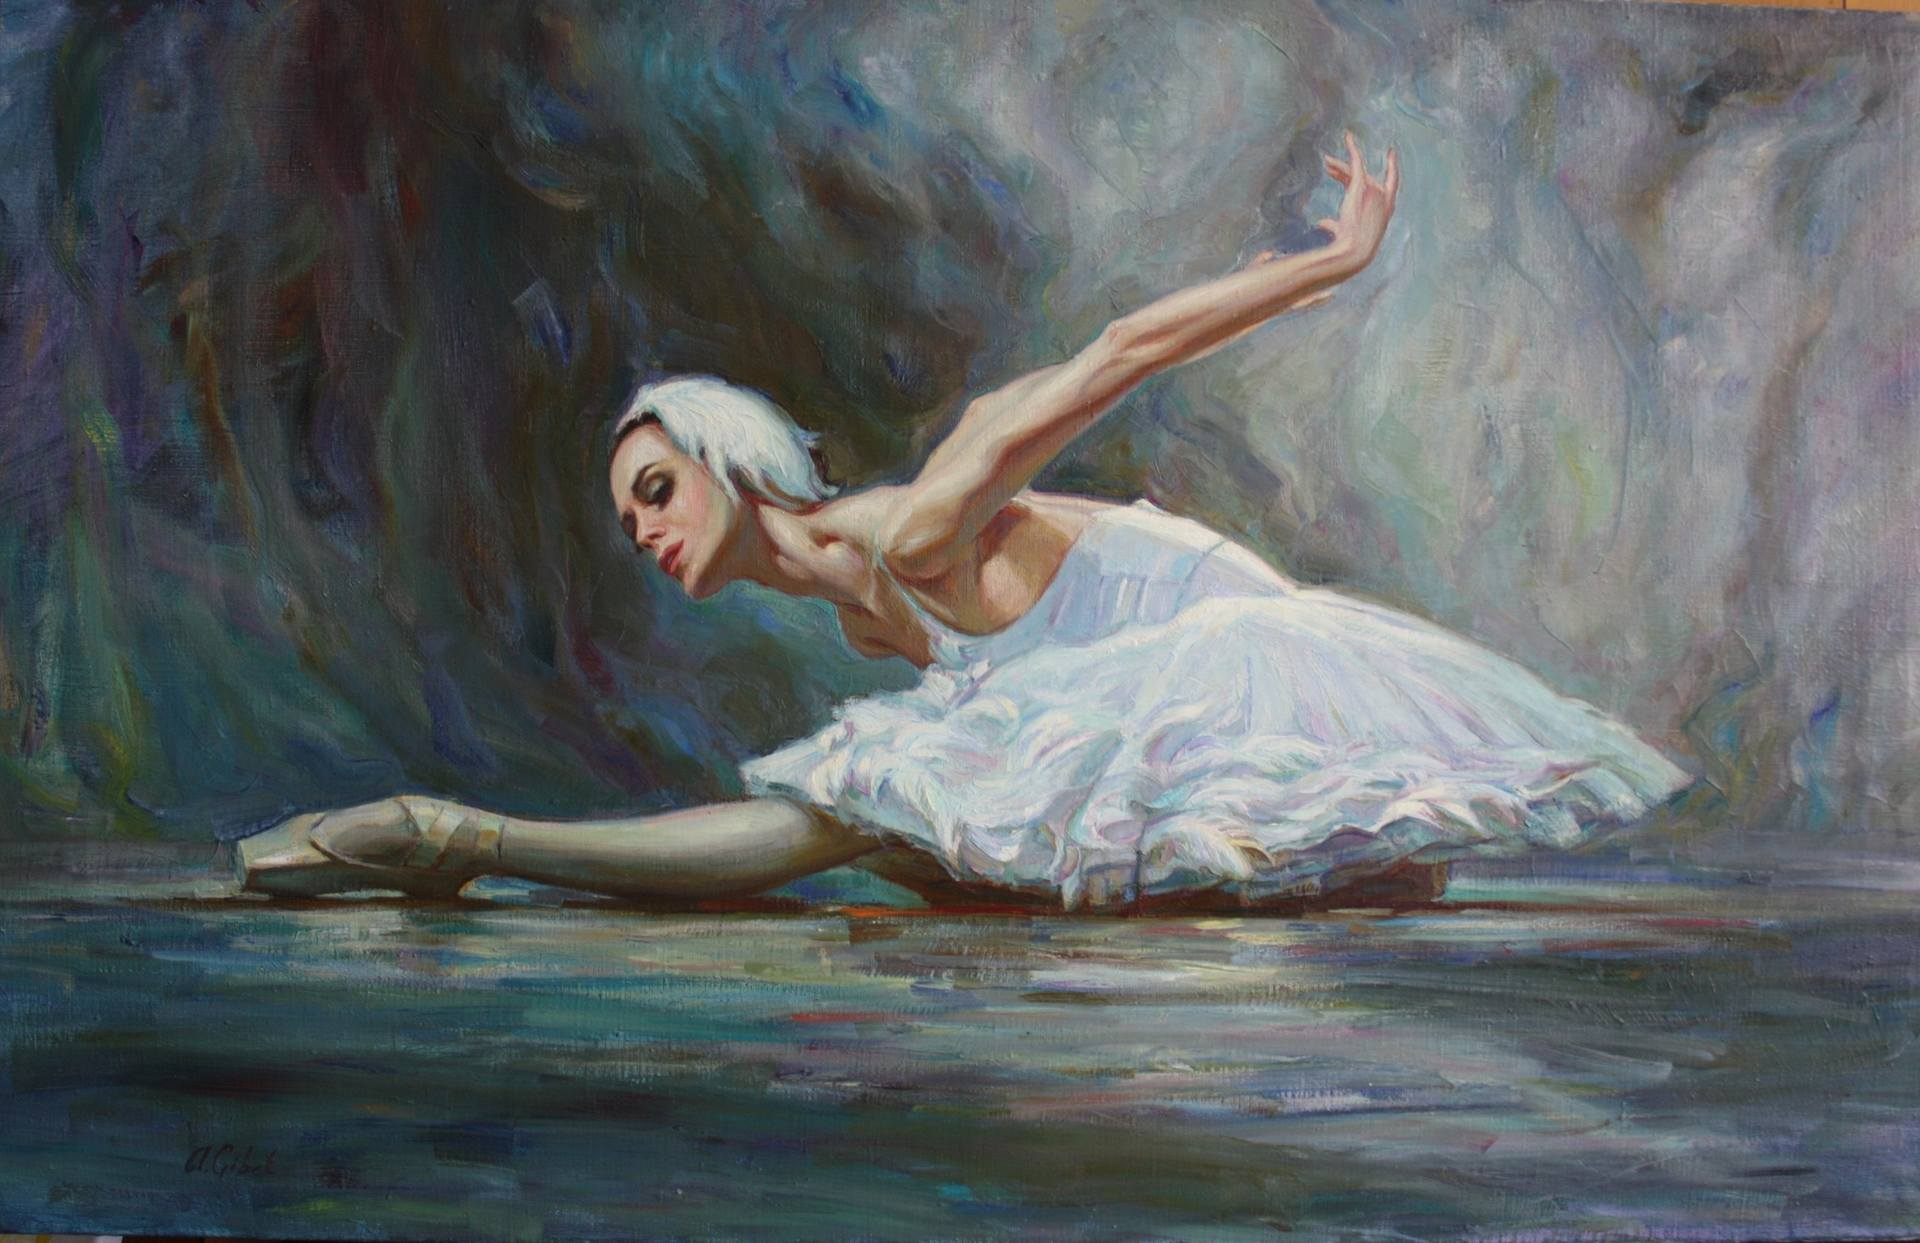 Dance of swan (prima balerina of Mariinskiy theater, ballet Swan lake) Painting by Alisa Gibet